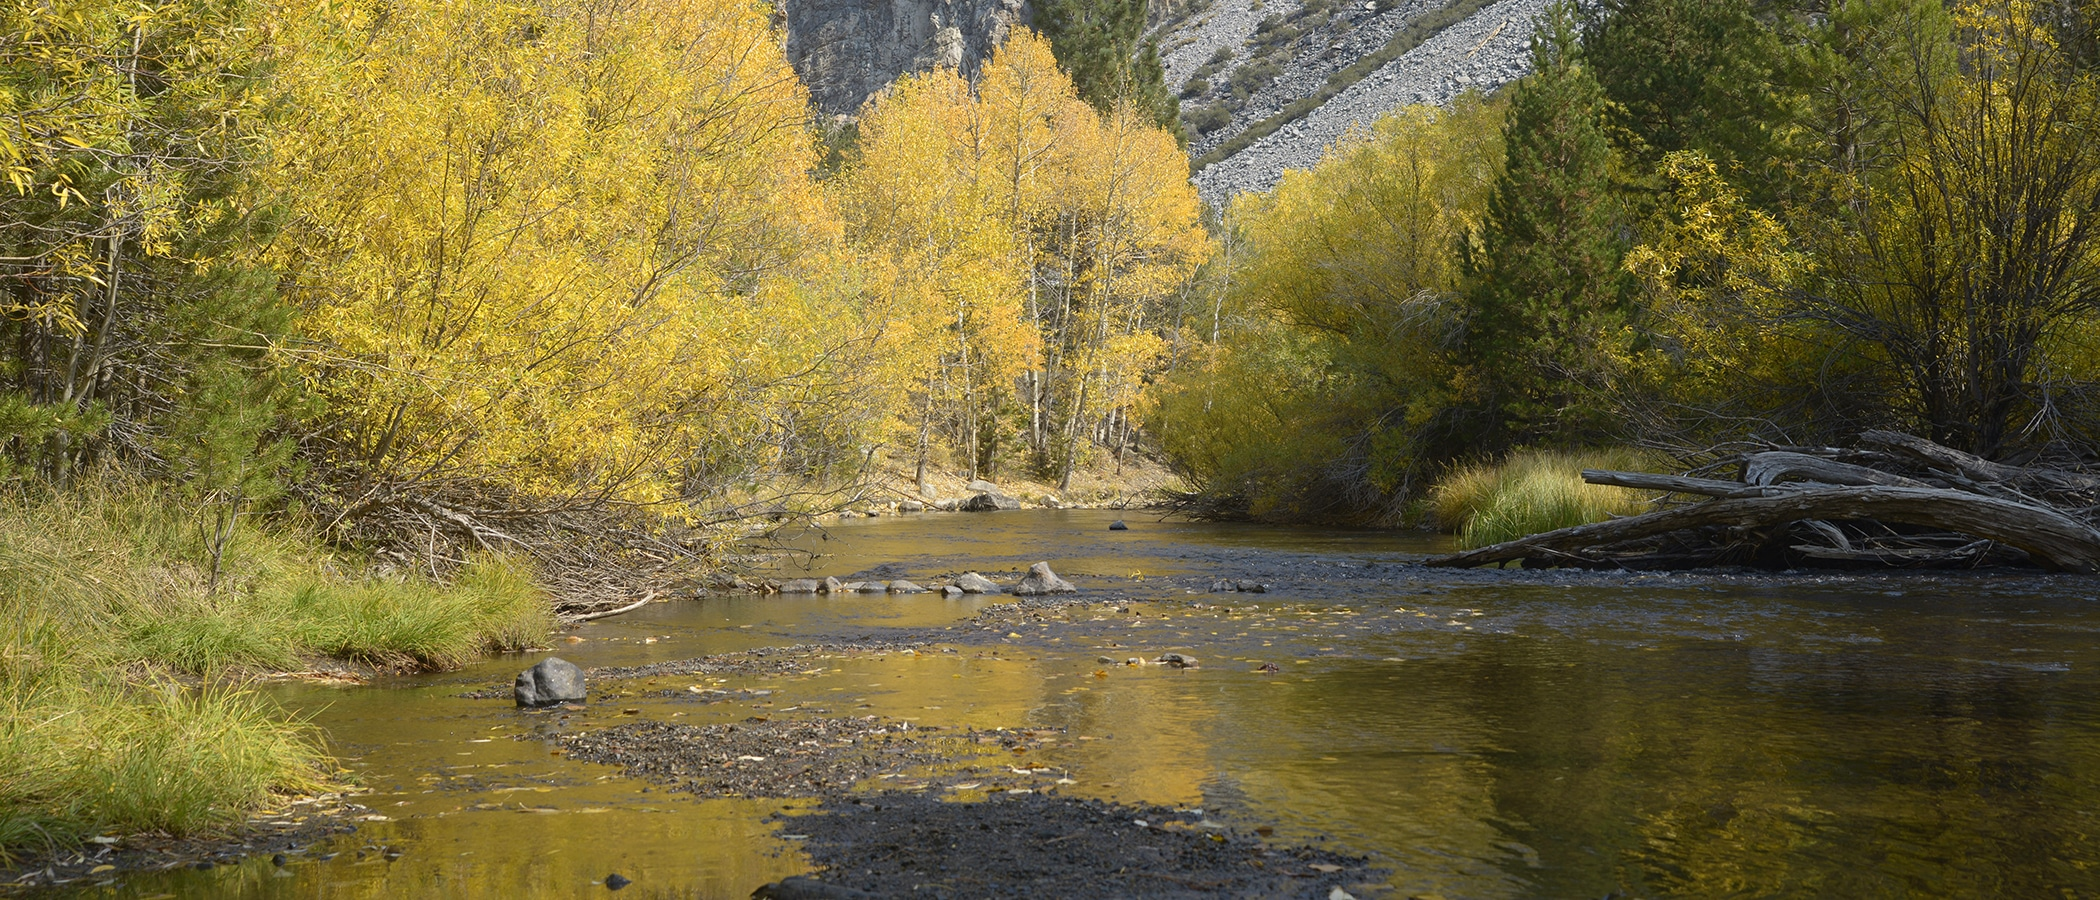 Trees with bright yellow leaves line a shallow creek, which flows towards gray gravel hills.